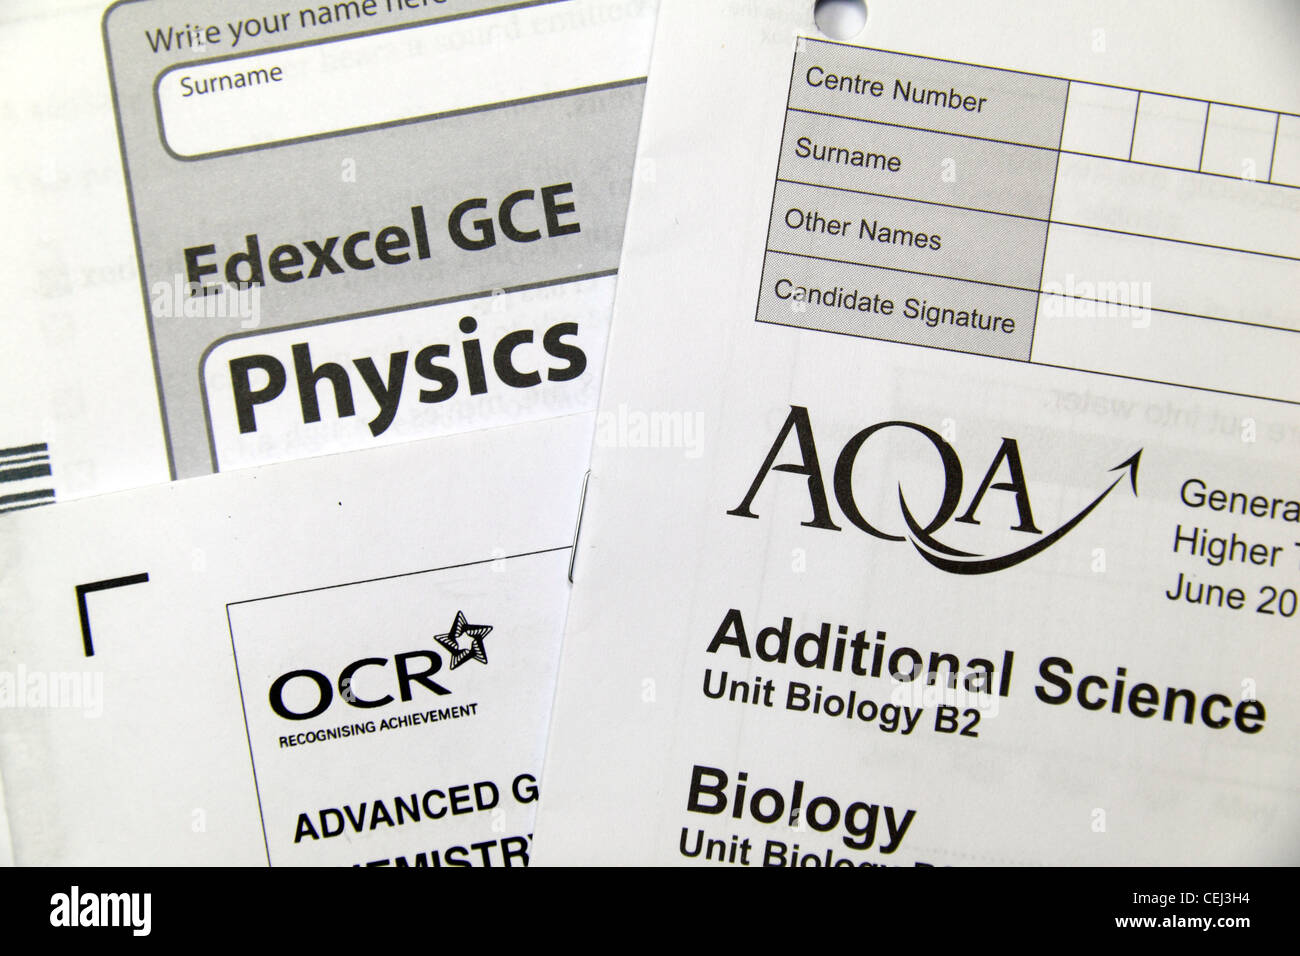 geography papers Edexcel geography question papers and mark schemes  papers on this page (edexcel gcse geography b papers + mark schemes): june 2014 - gcse geography b unit 2 (higher.